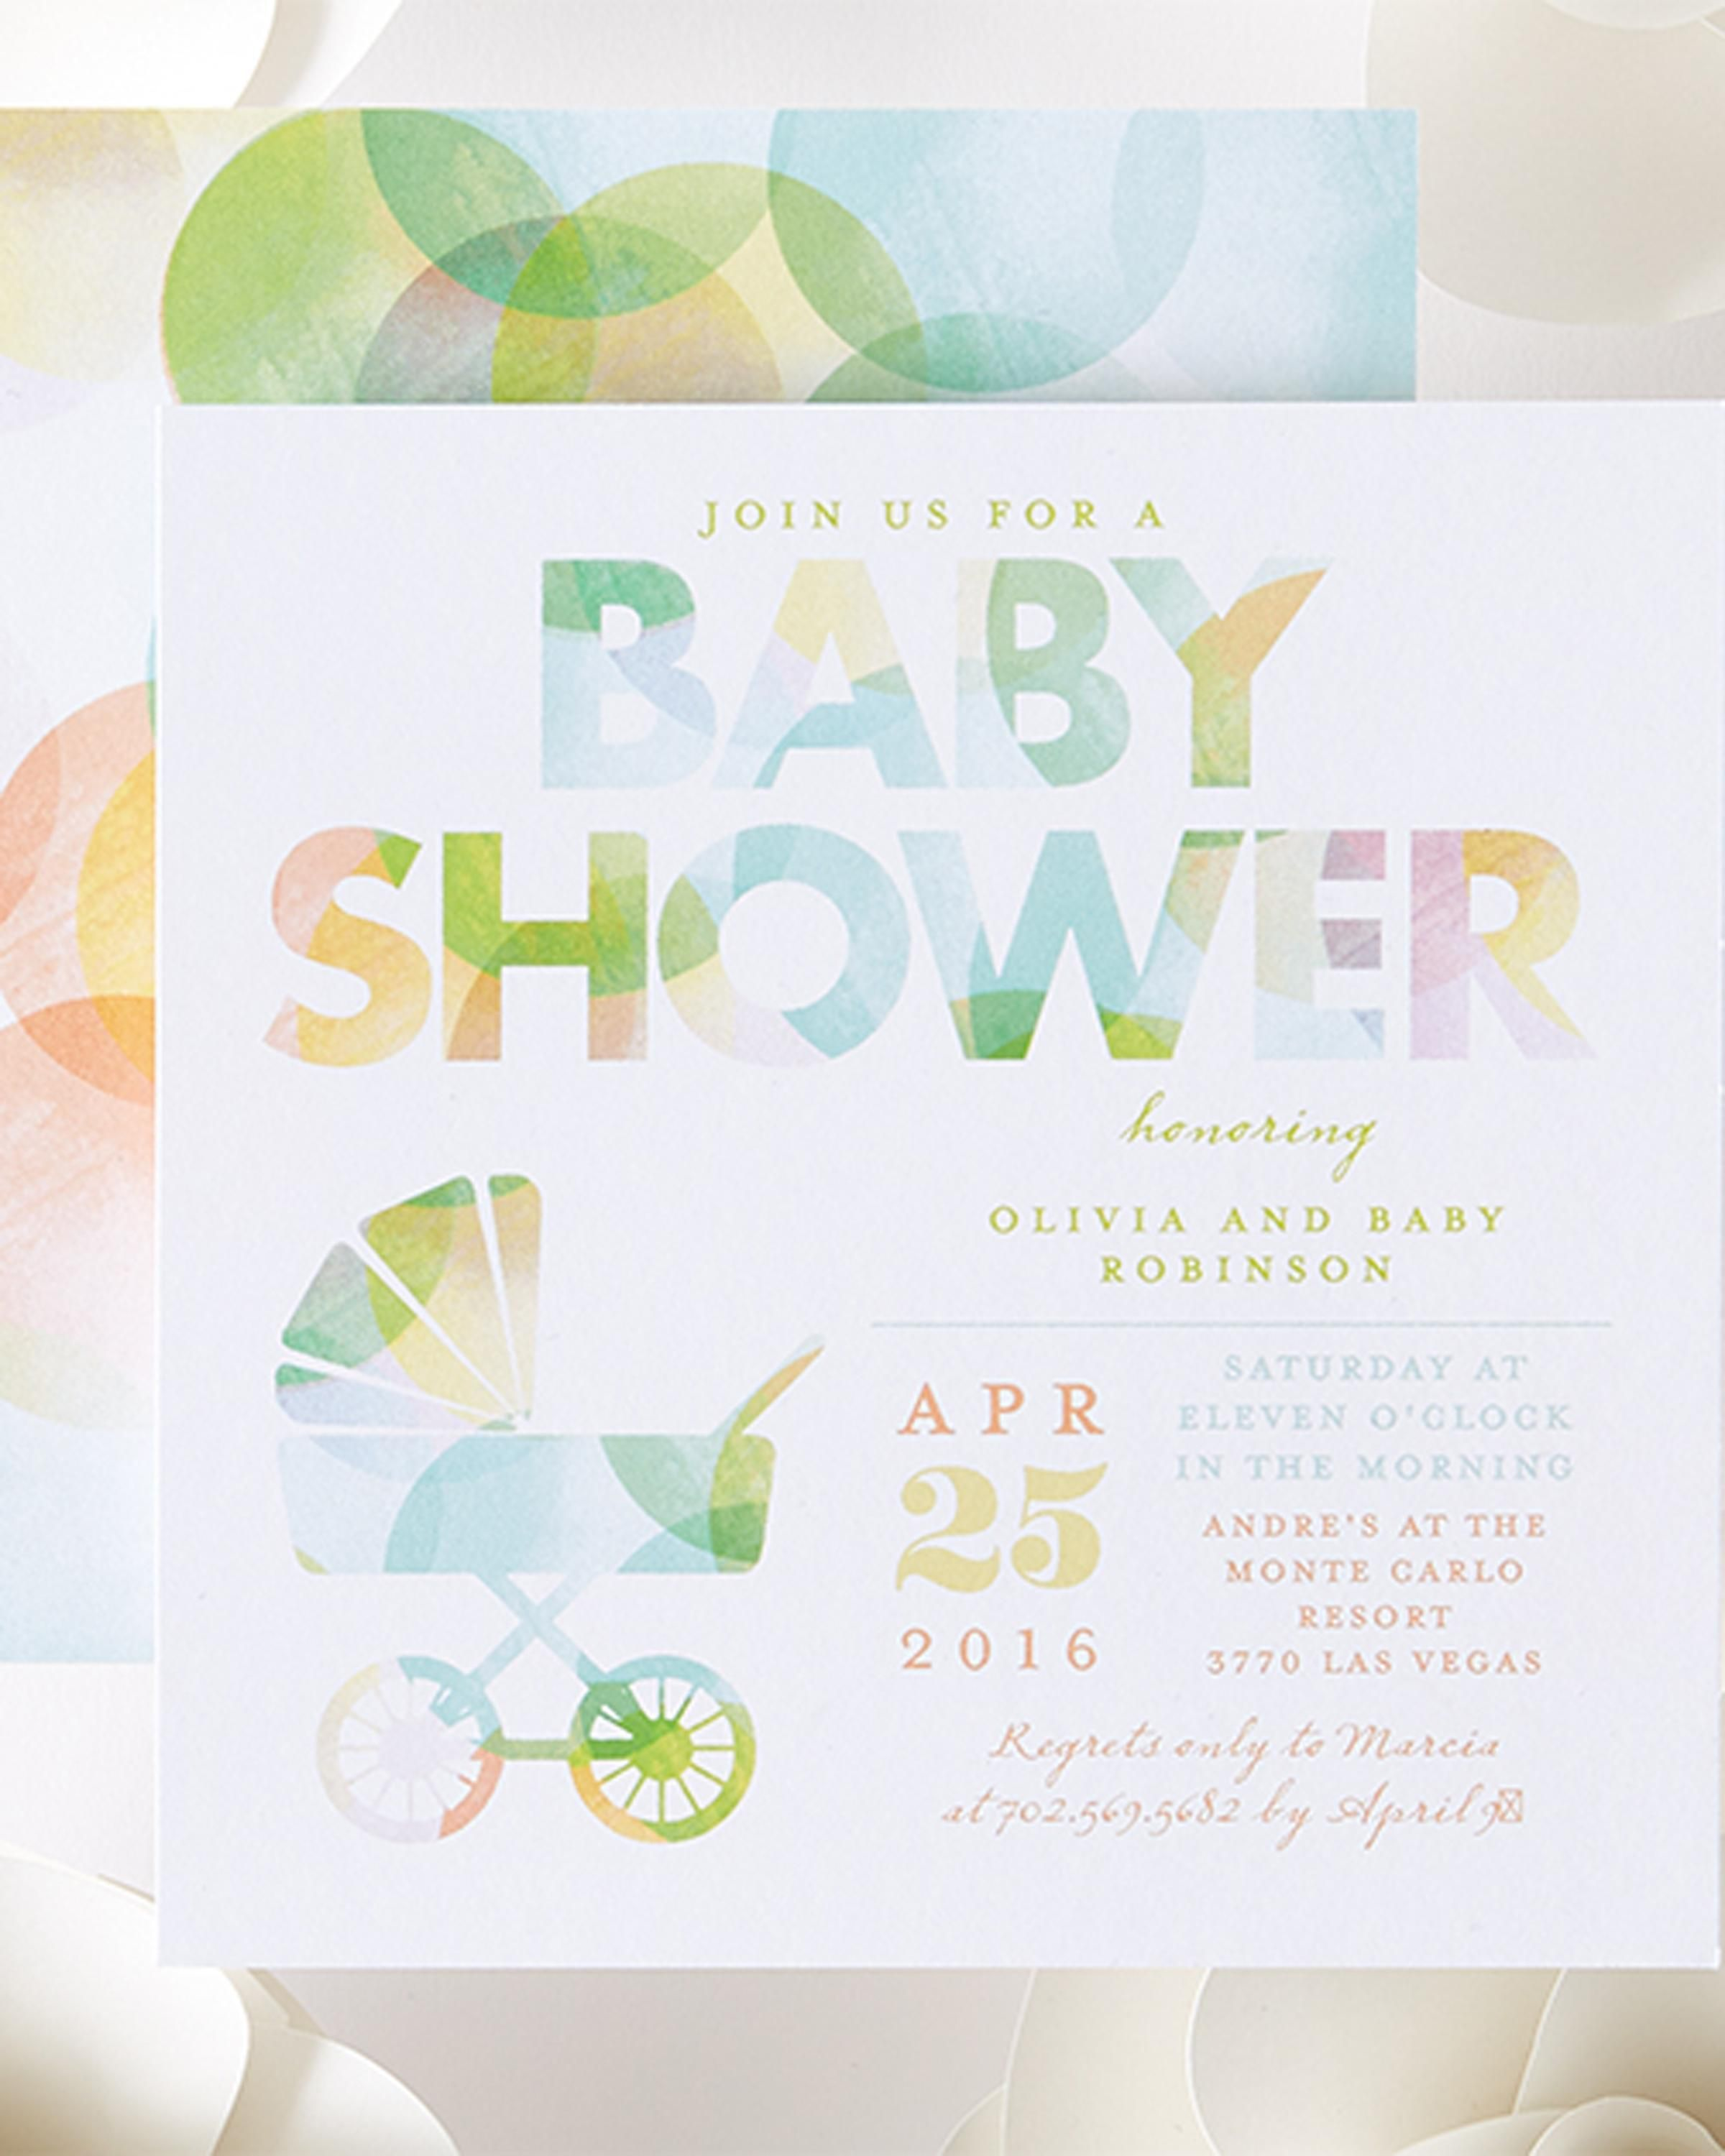 Honor mommy with her little one with whimsical baby shower ...